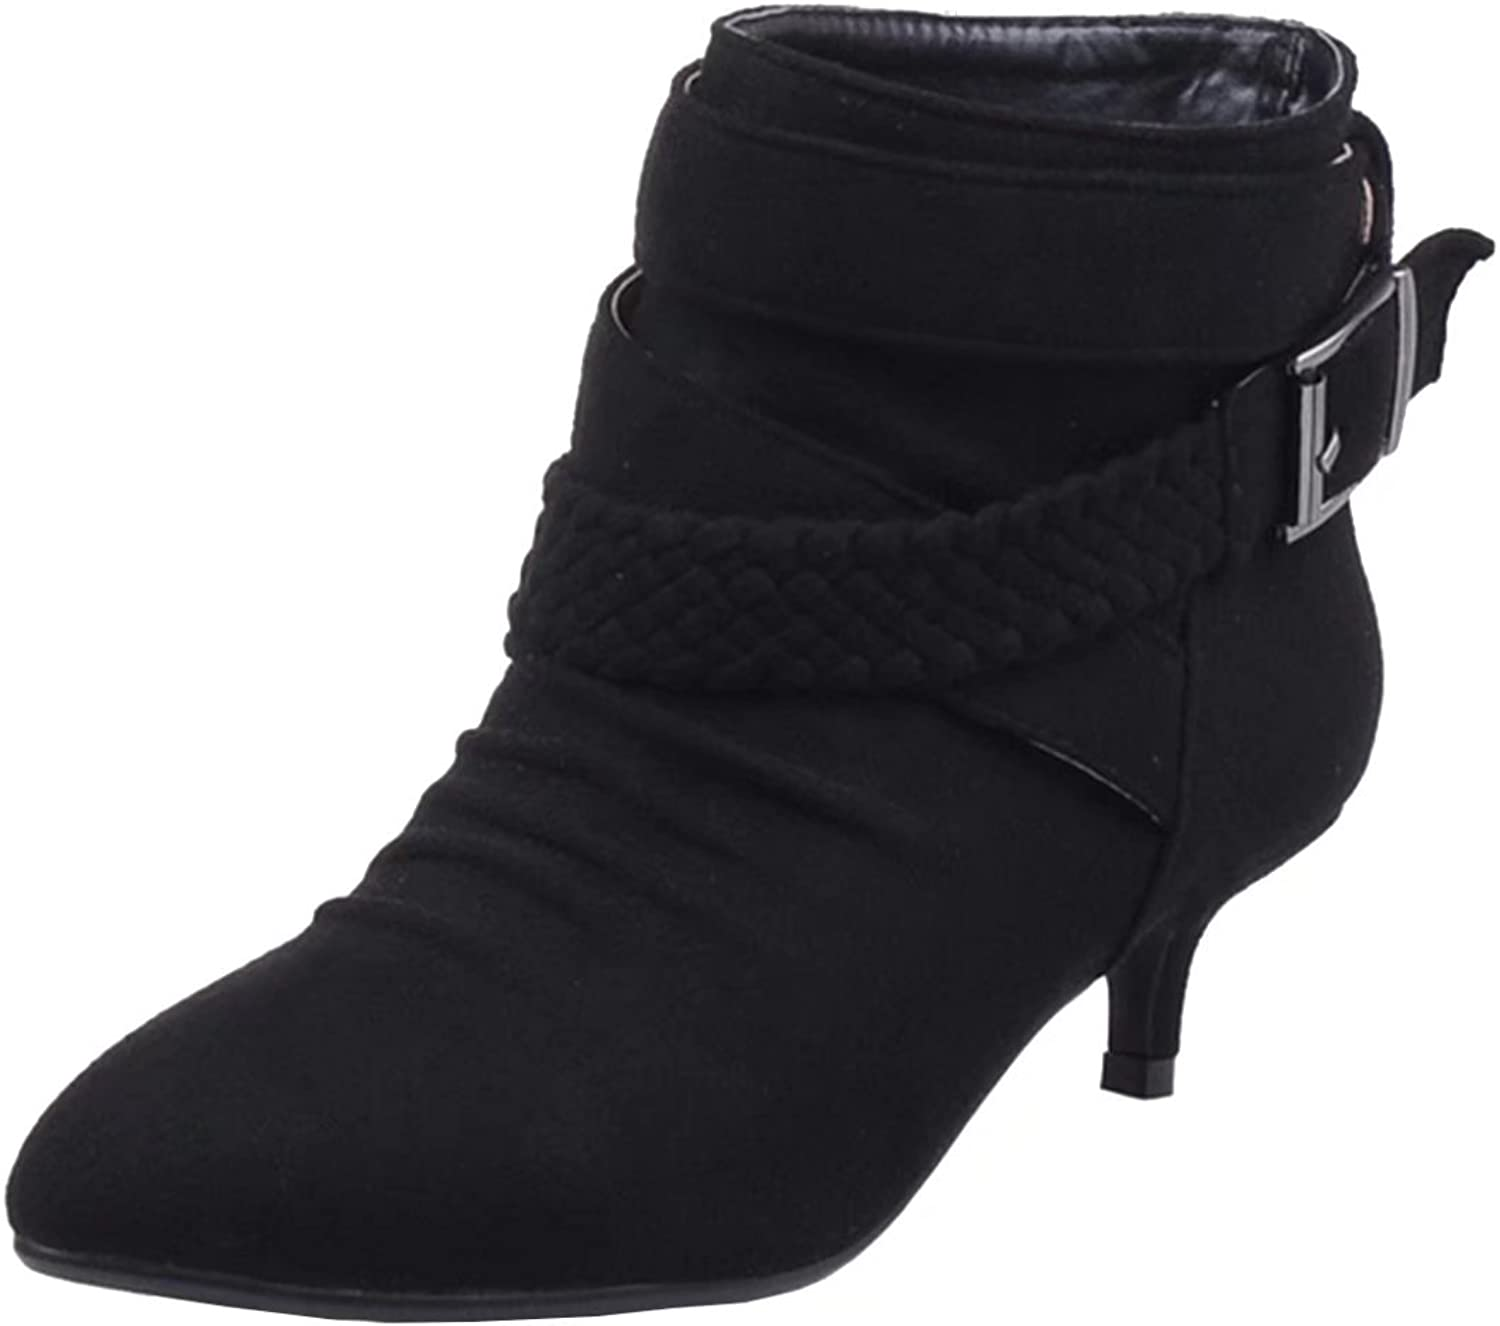 AIYOUMEI Women's Kitten Heel Booties Pointed Toe Autumn Winter Short Ankle Boots with Buckle